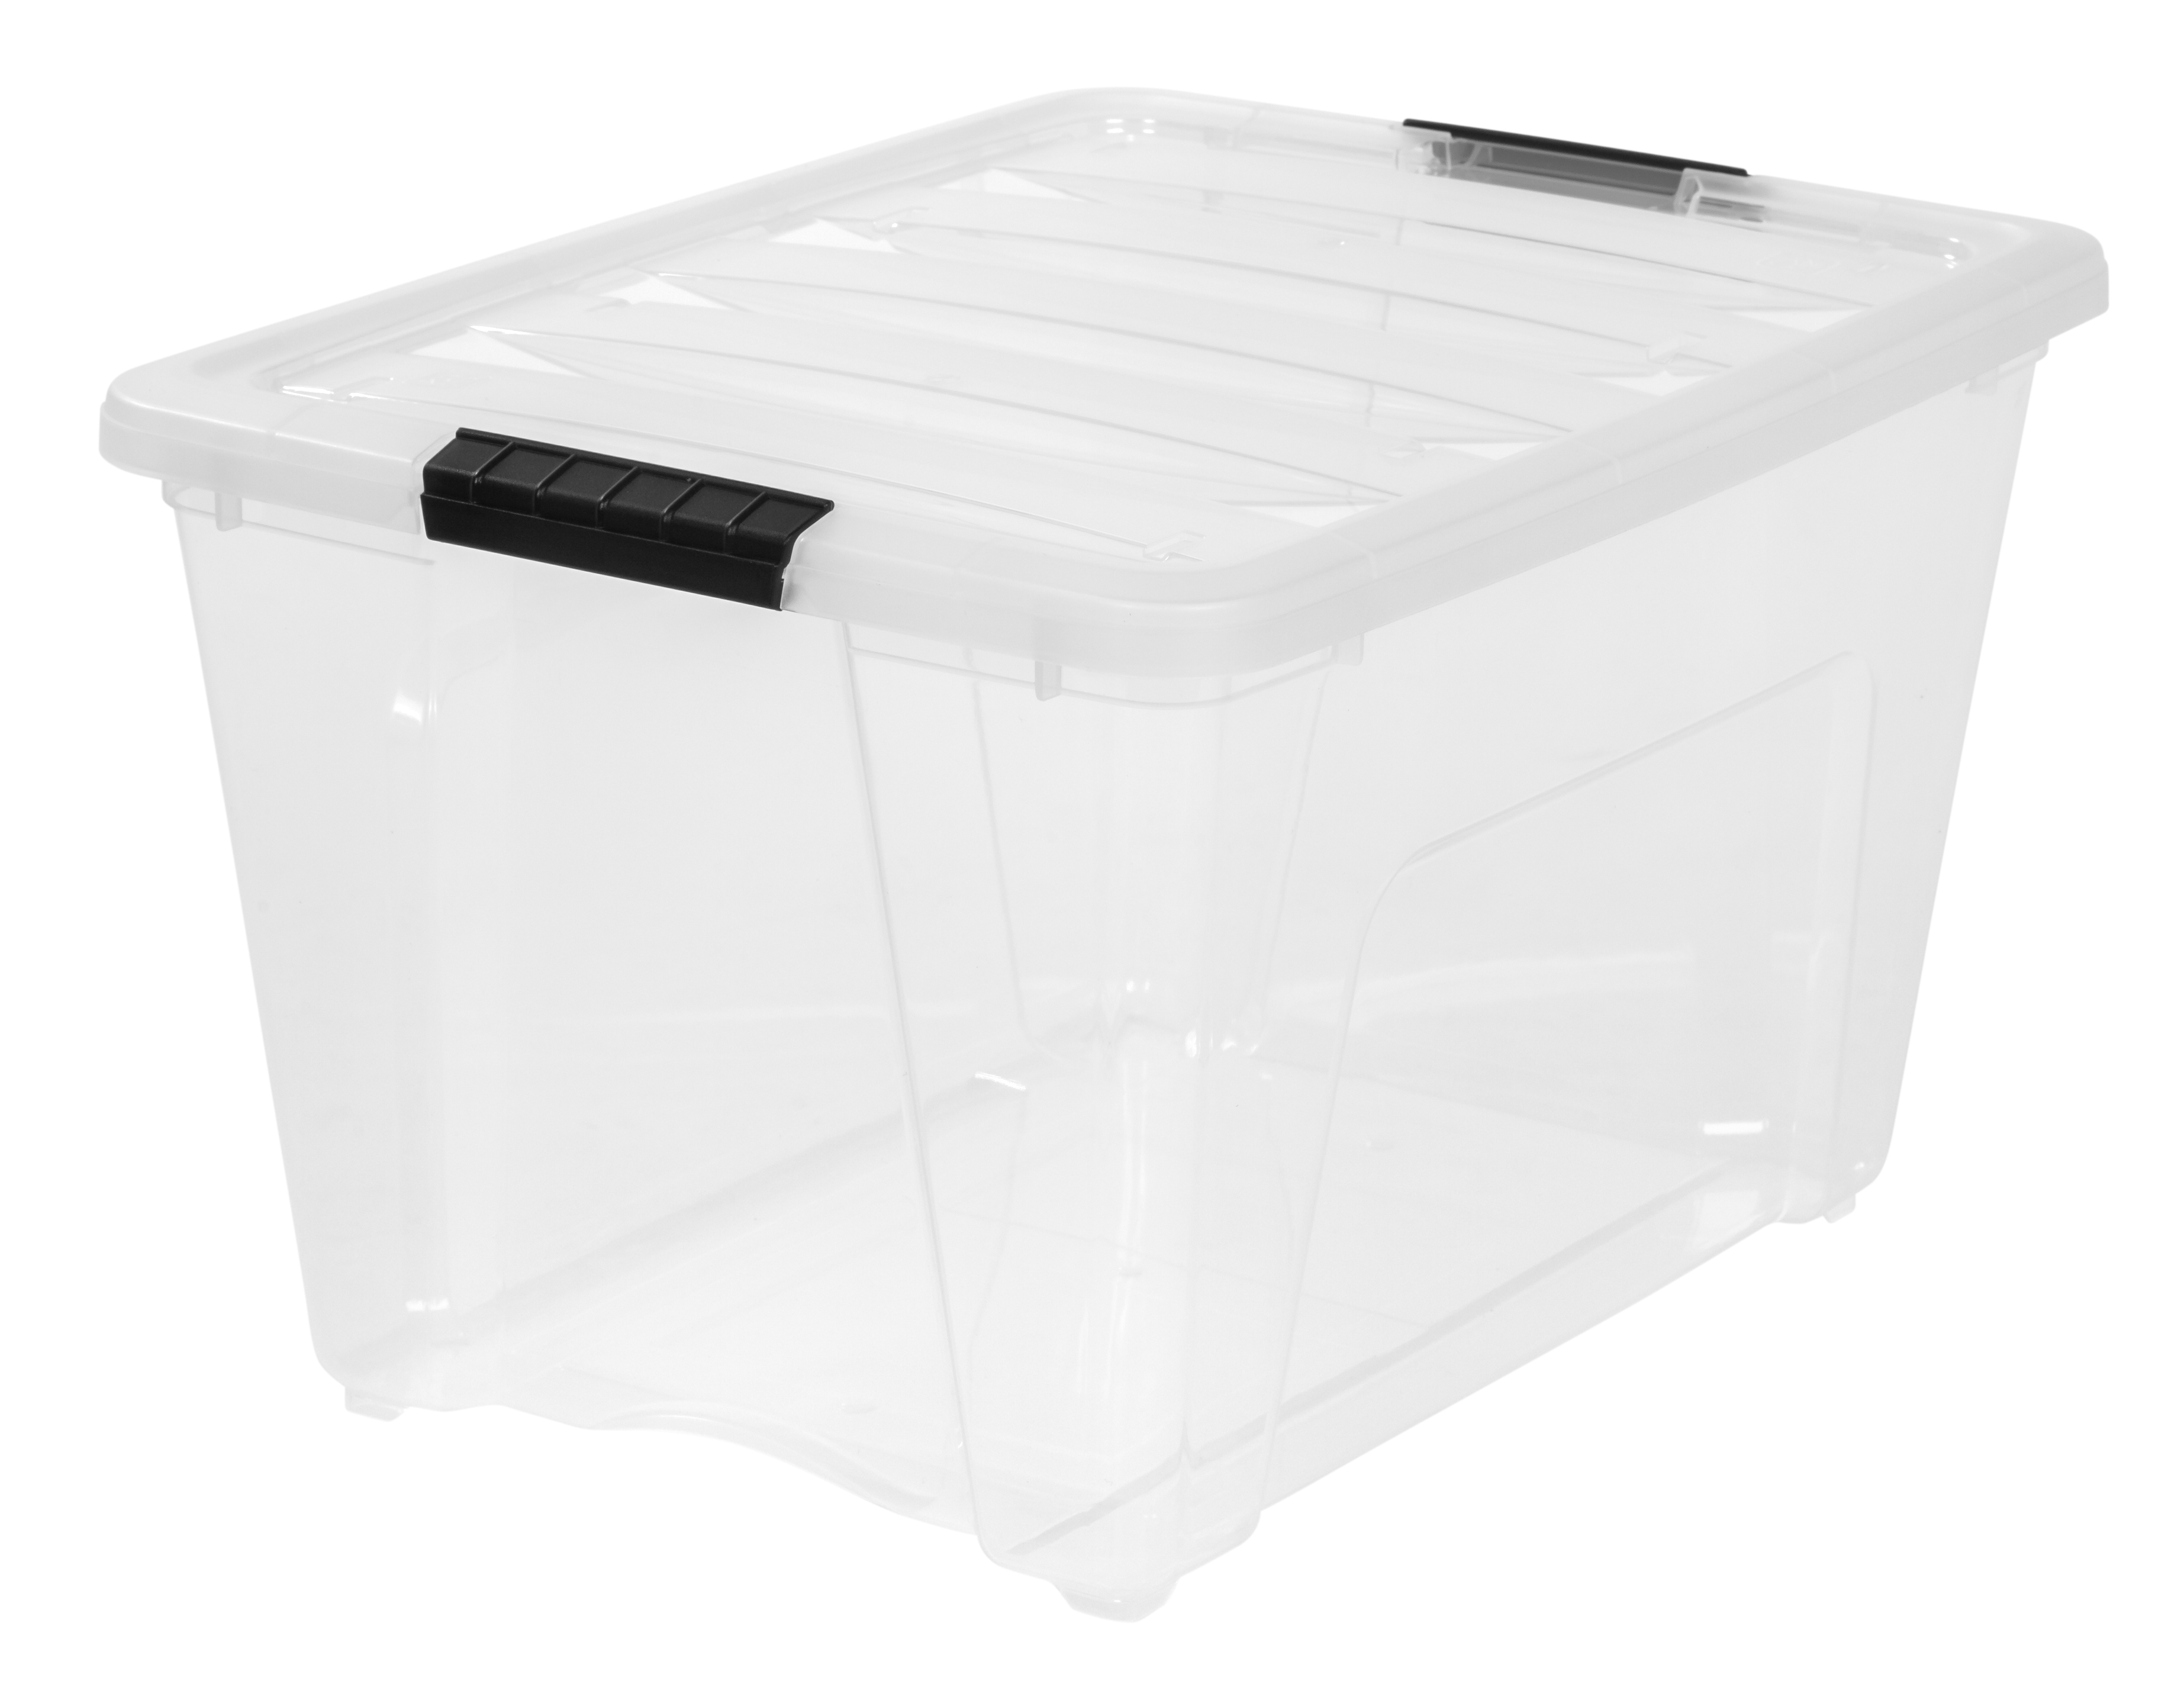 IRIS 54 Qt. Stack and Pull Plastic Storage Box, Clear - Walmart.com